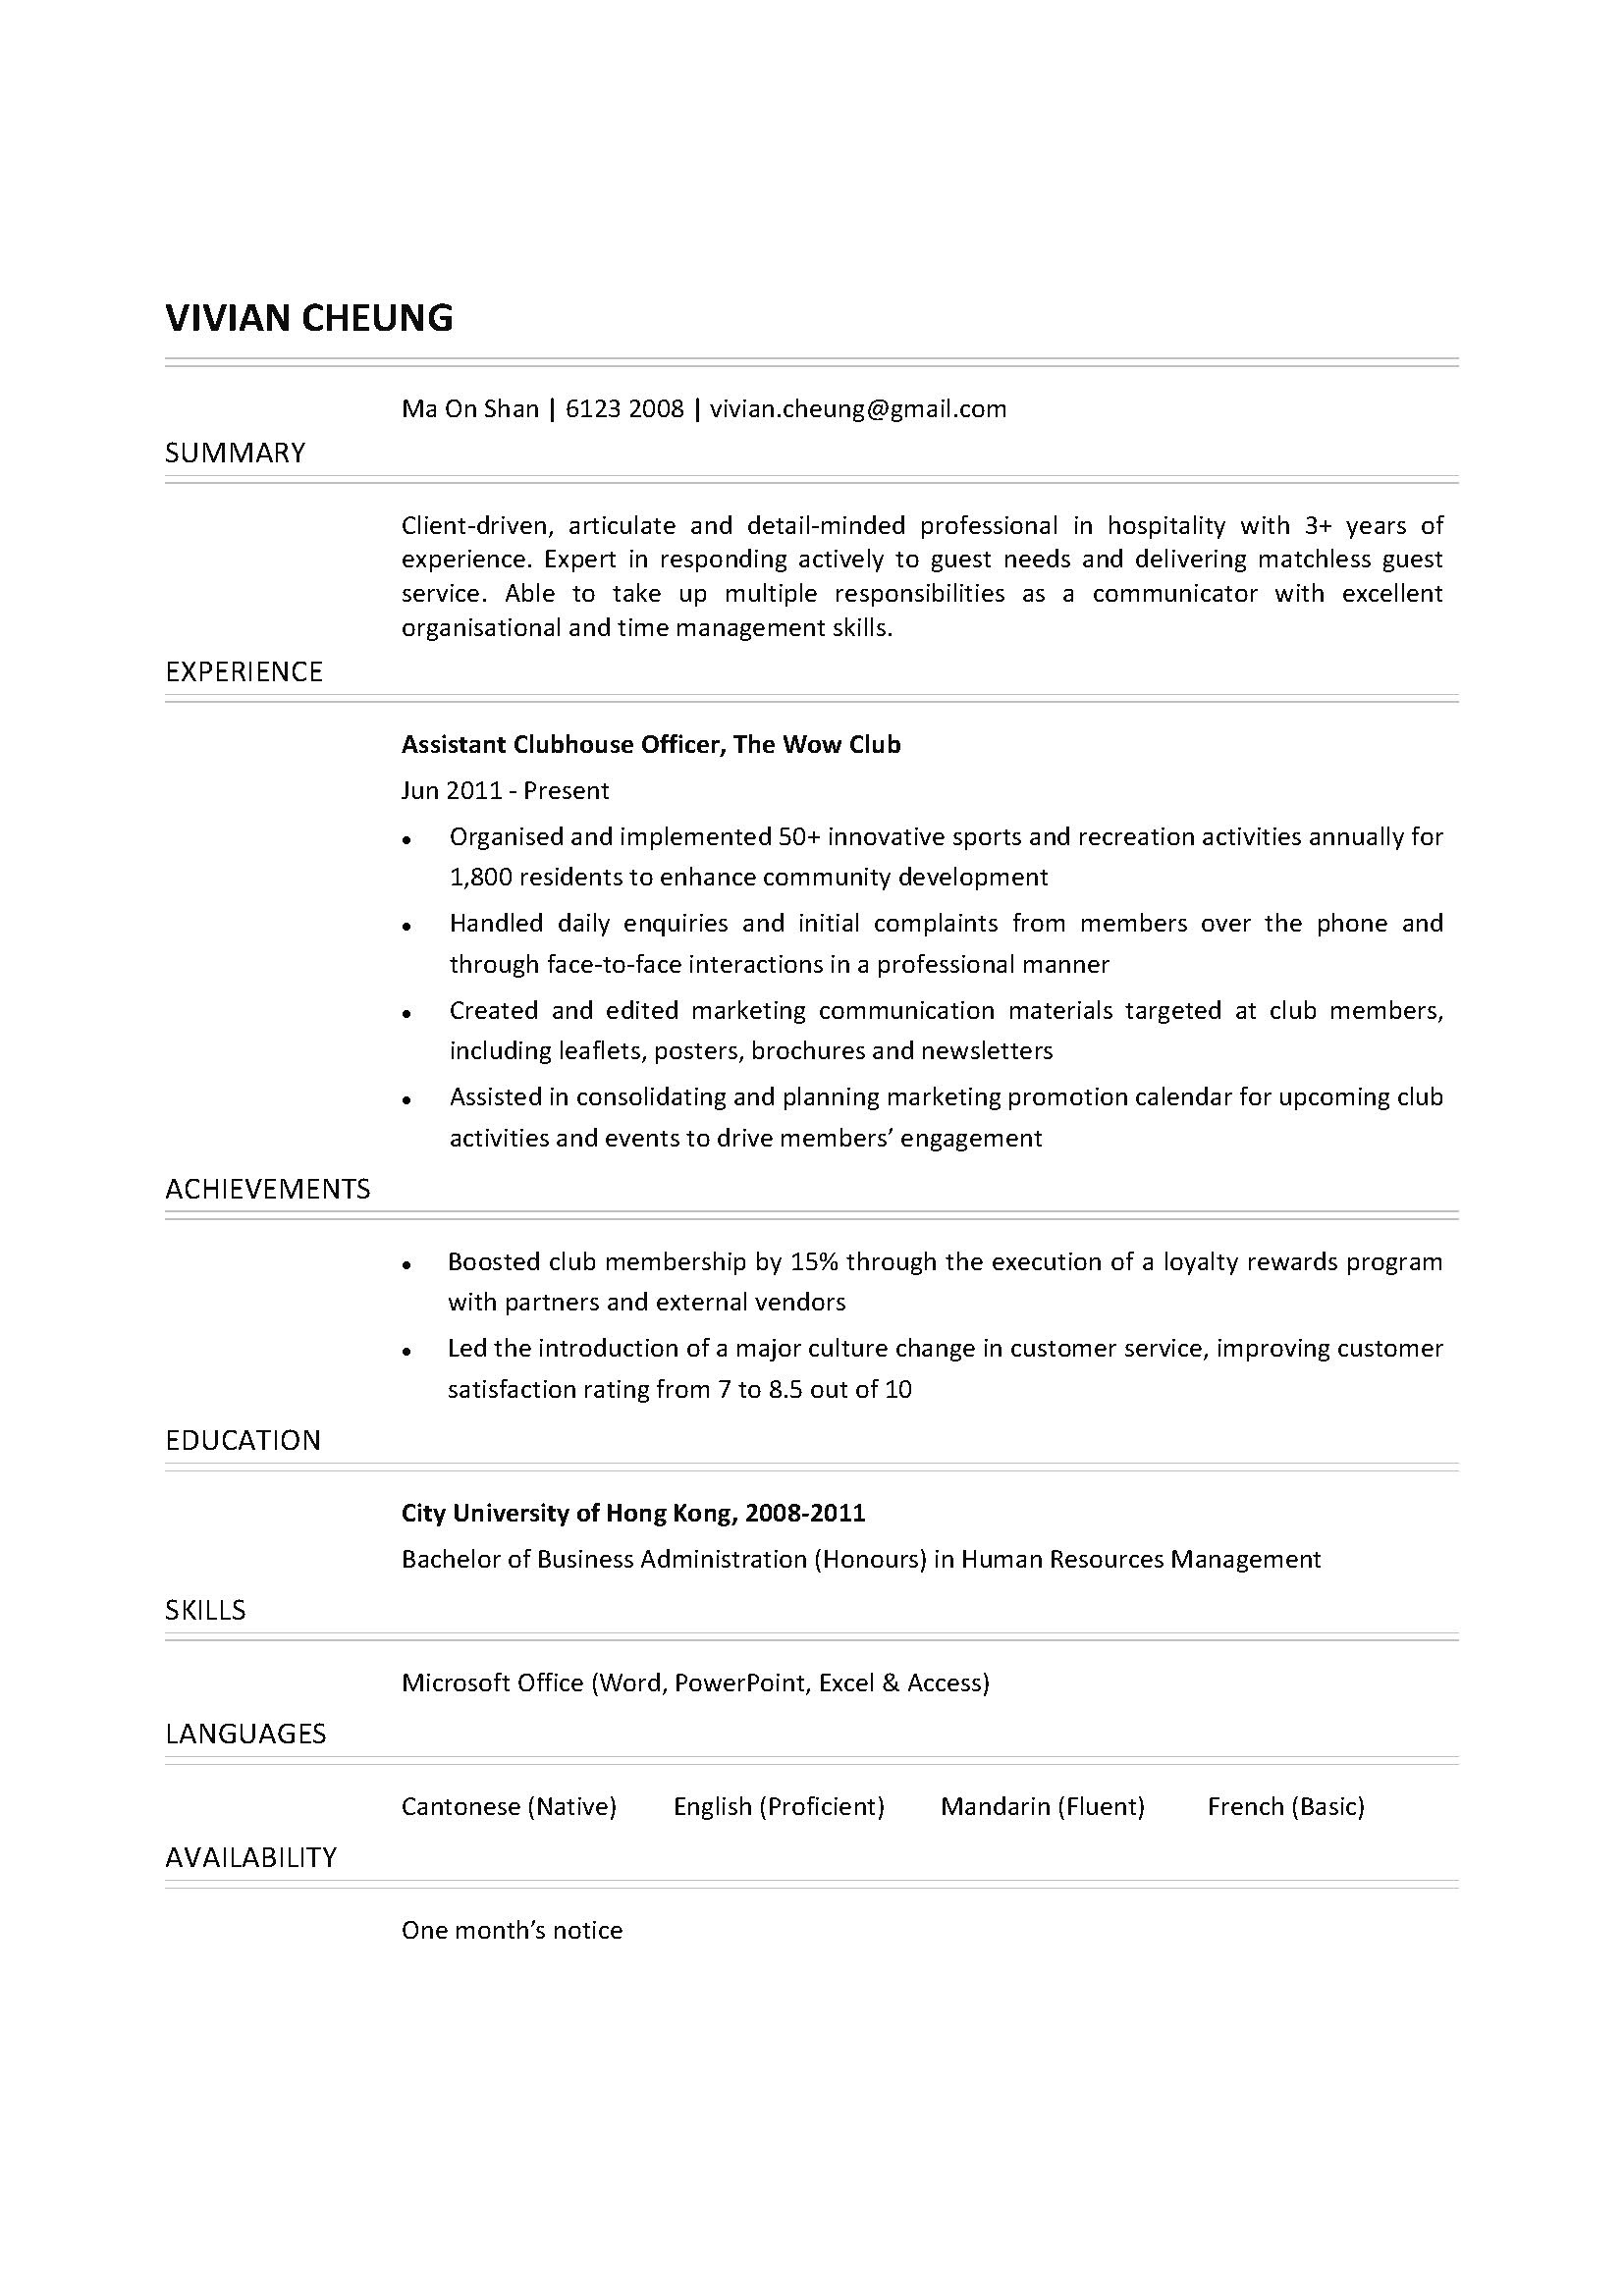 assistant clubhouse officer cv